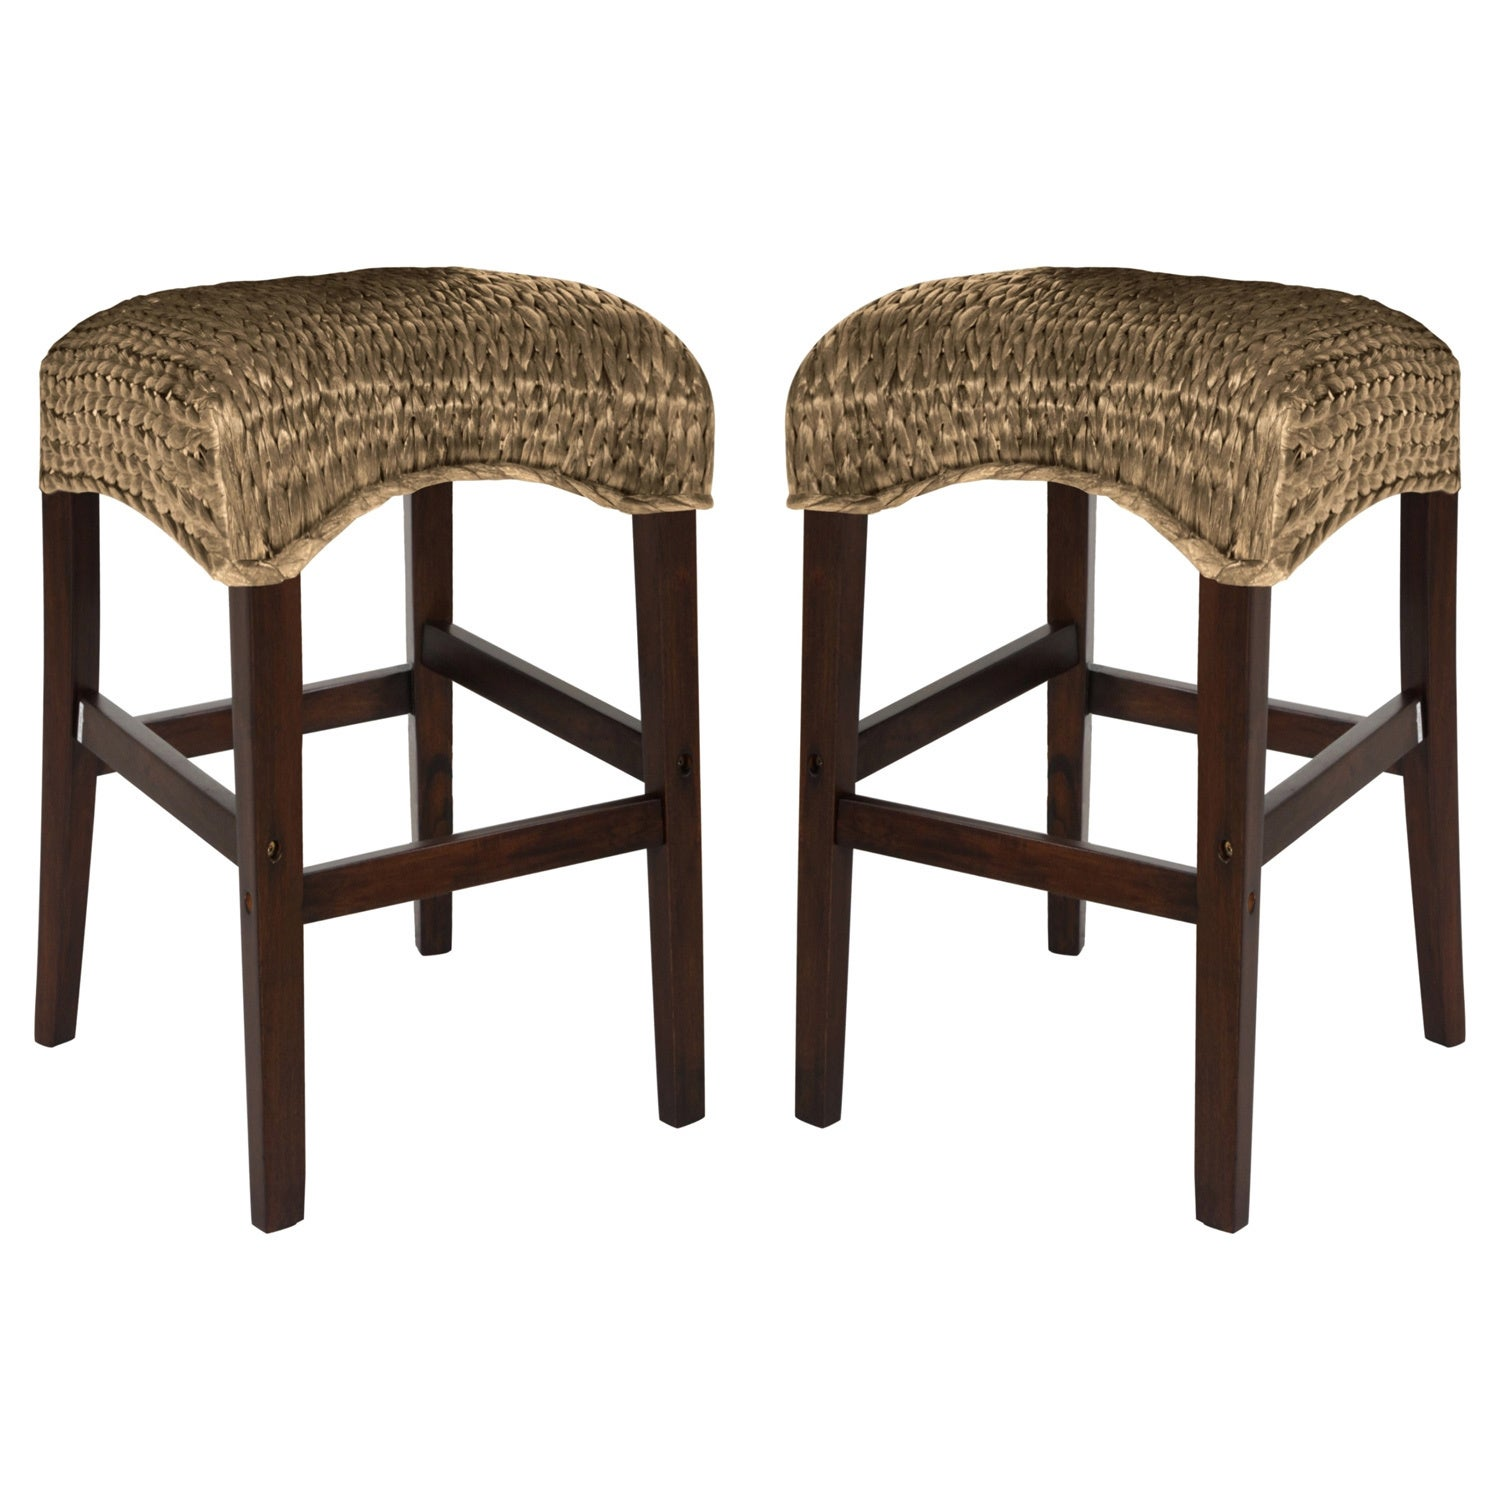 White Modern Desk Chair, Shop Montgomery Rattan Woven Counter Height Backless Stools Set Of 2 Overstock 10156628